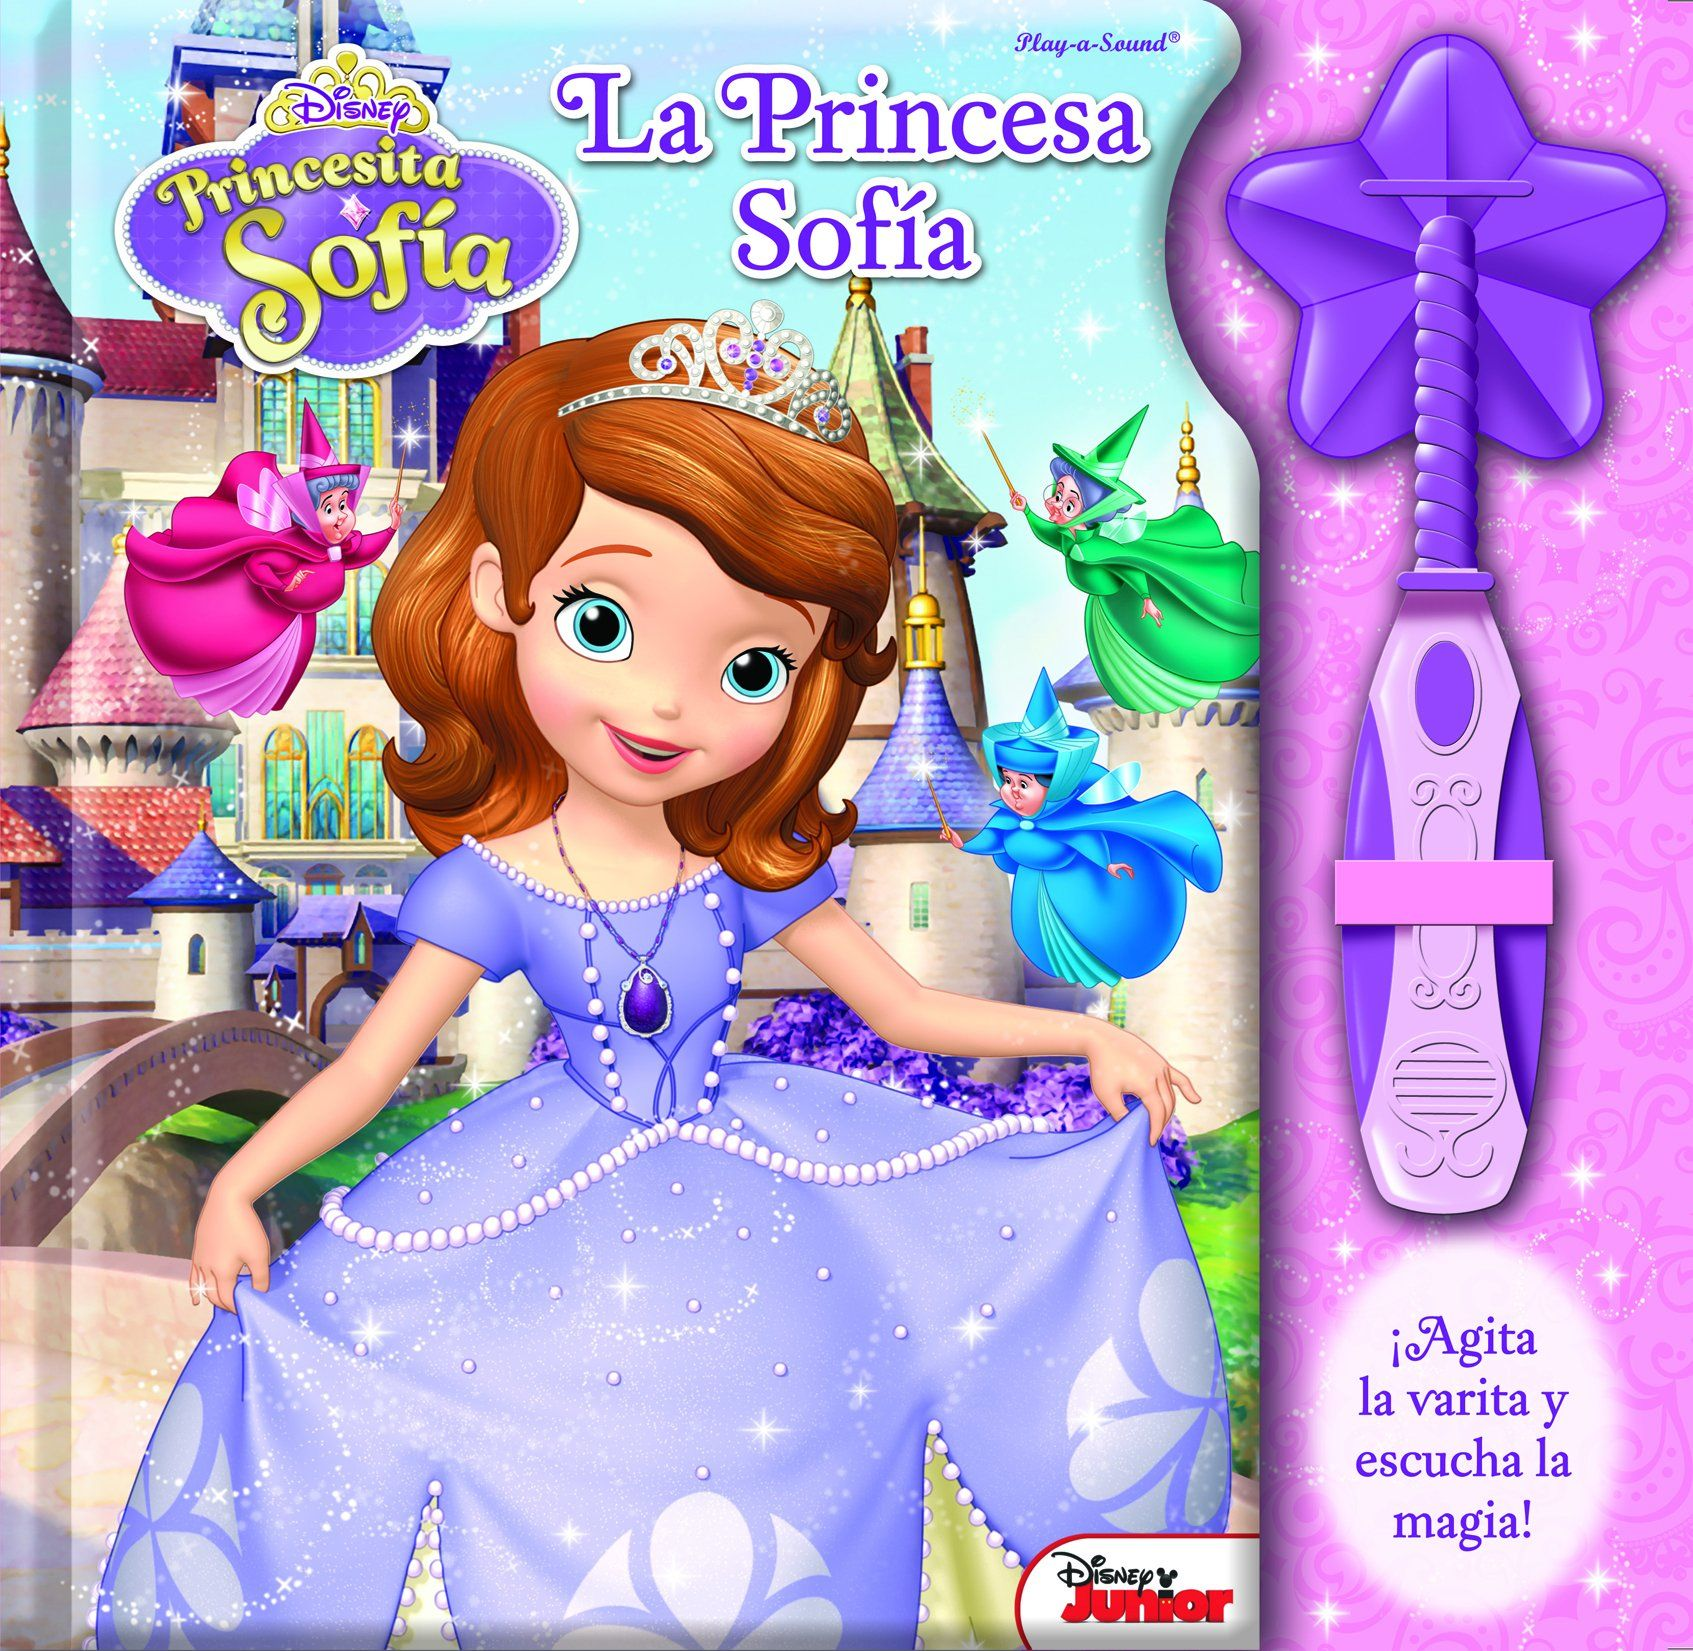 LA VARITA MAGICA DE LA PRINCESA SOFIA MAGIC WAND